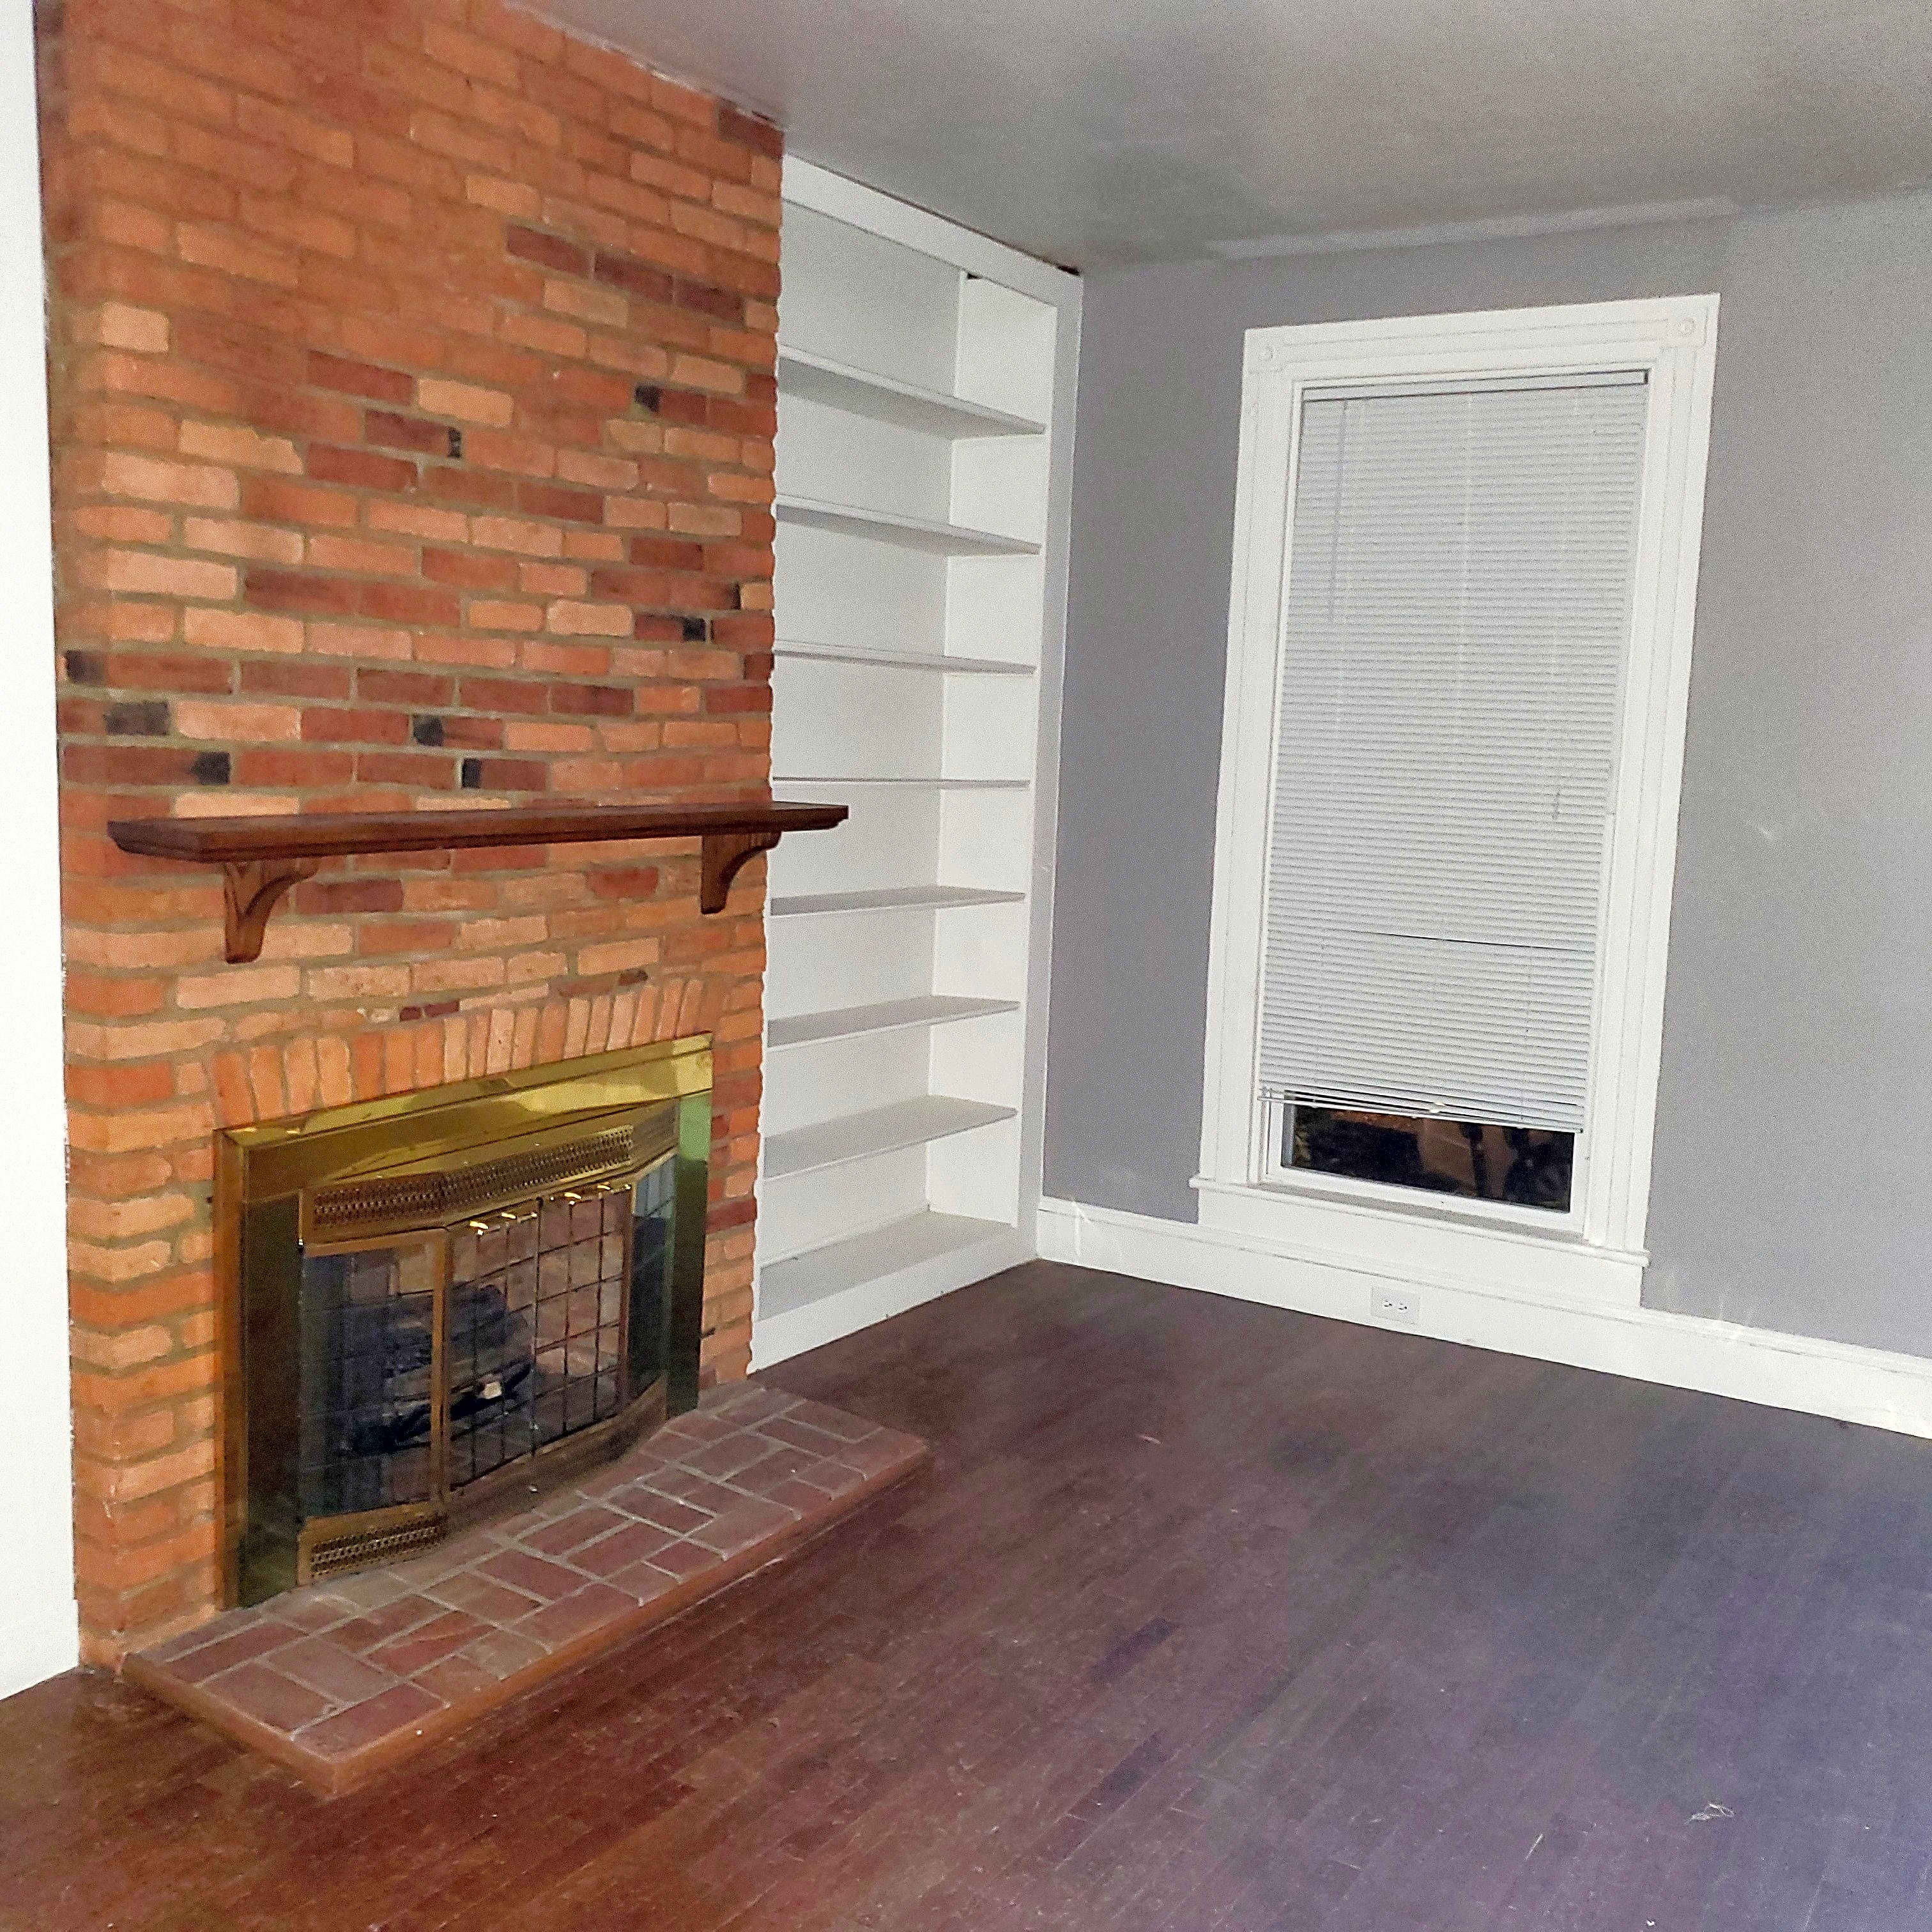 House for Rent in Baltimore